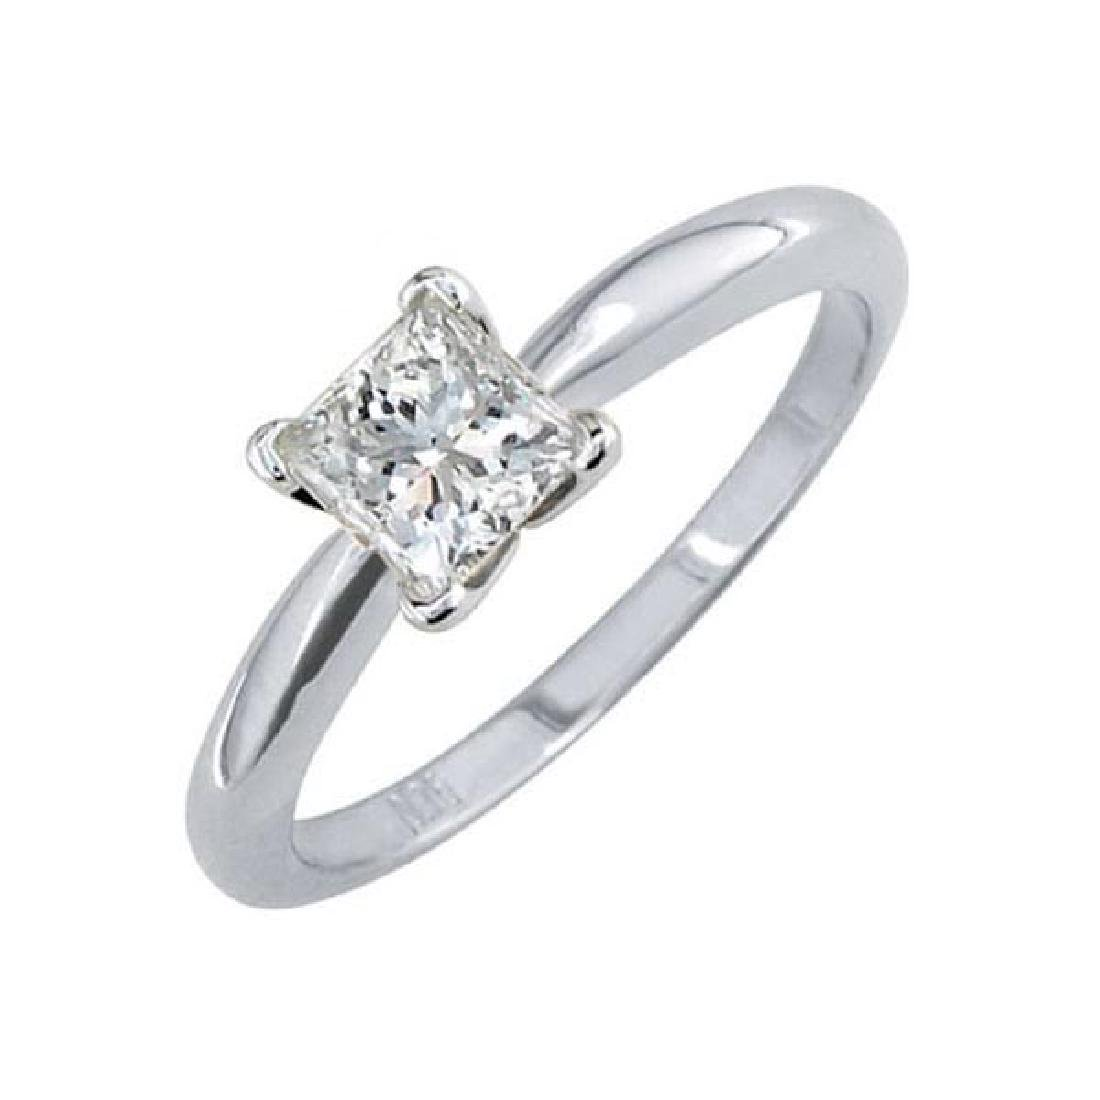 Certified 1 CTW Princess Diamond Solitaire 14k Ring D/I